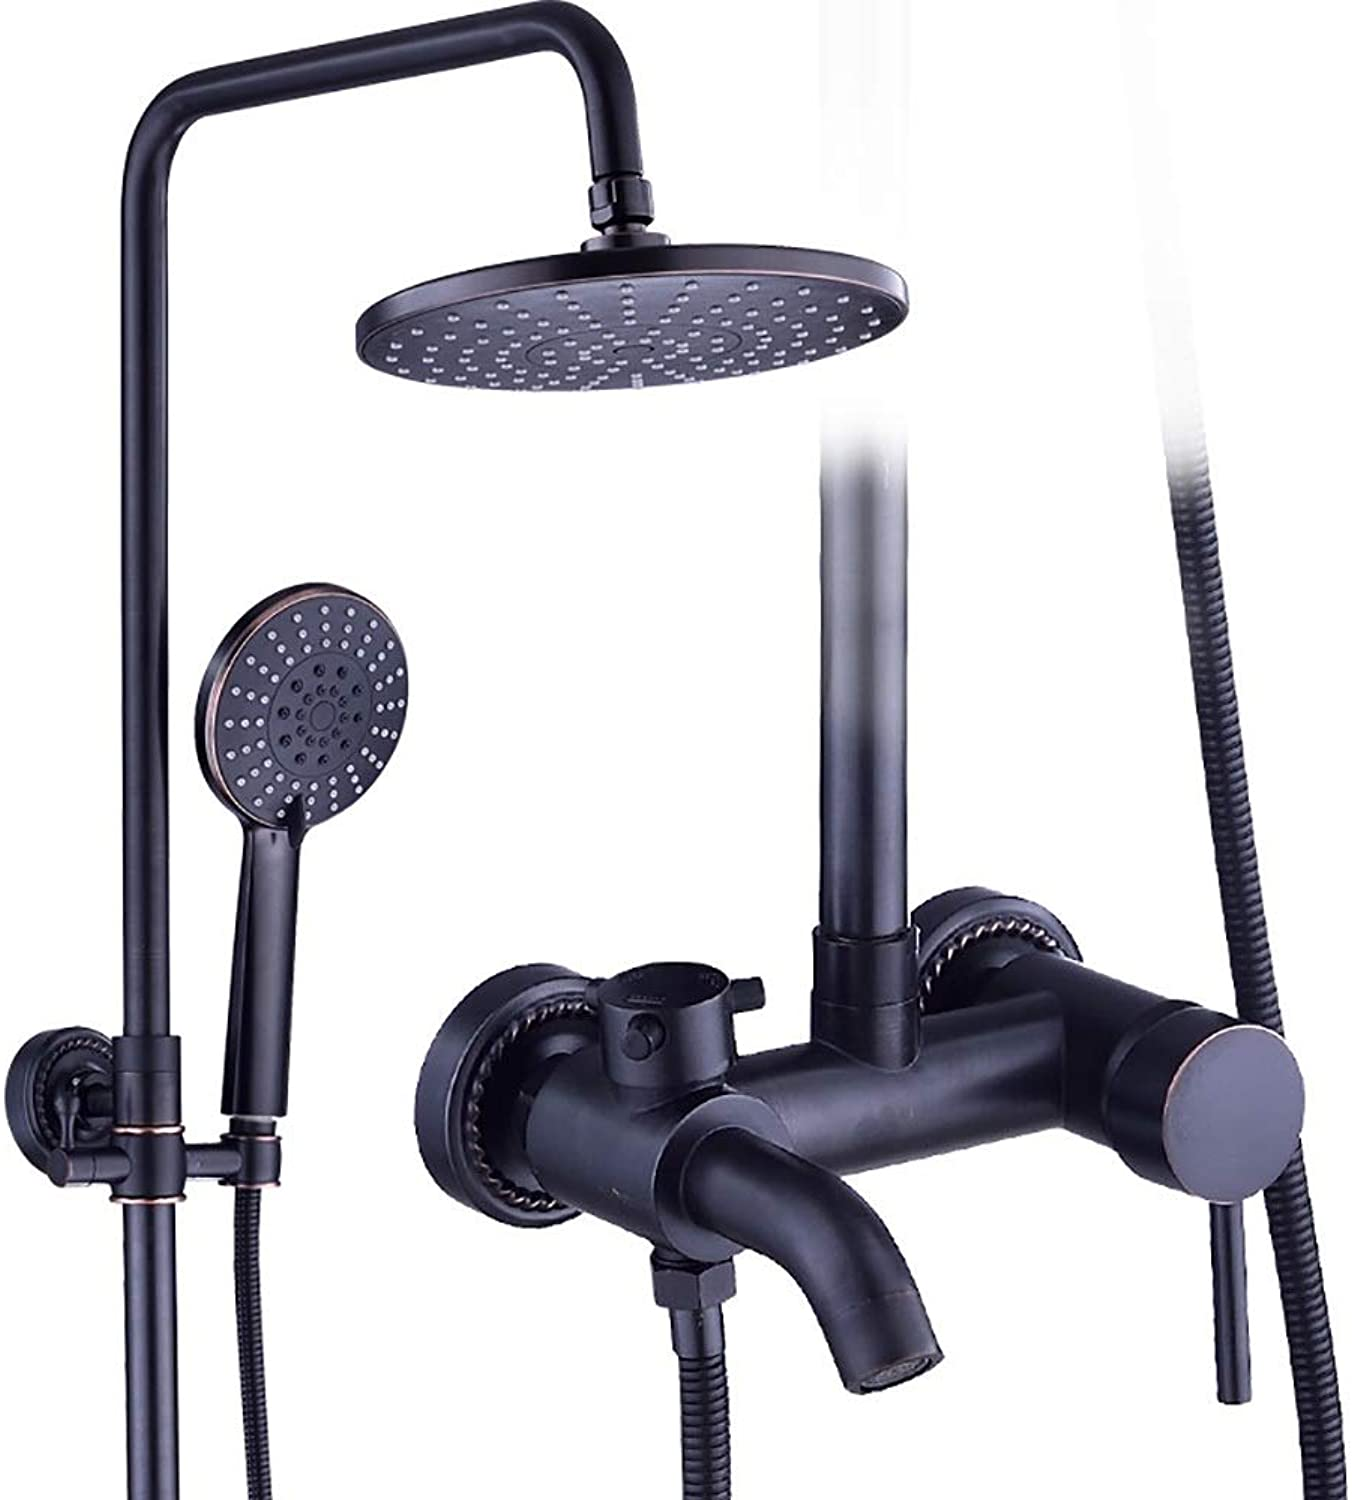 YYF-SHOWER Shower Systems Shower Set, European Retro Copper Bathroom Cold hot Water Tap Wall-mounted Lifting Rod Hand Shower Ceramic Spool (color   BLACK, Size   A)